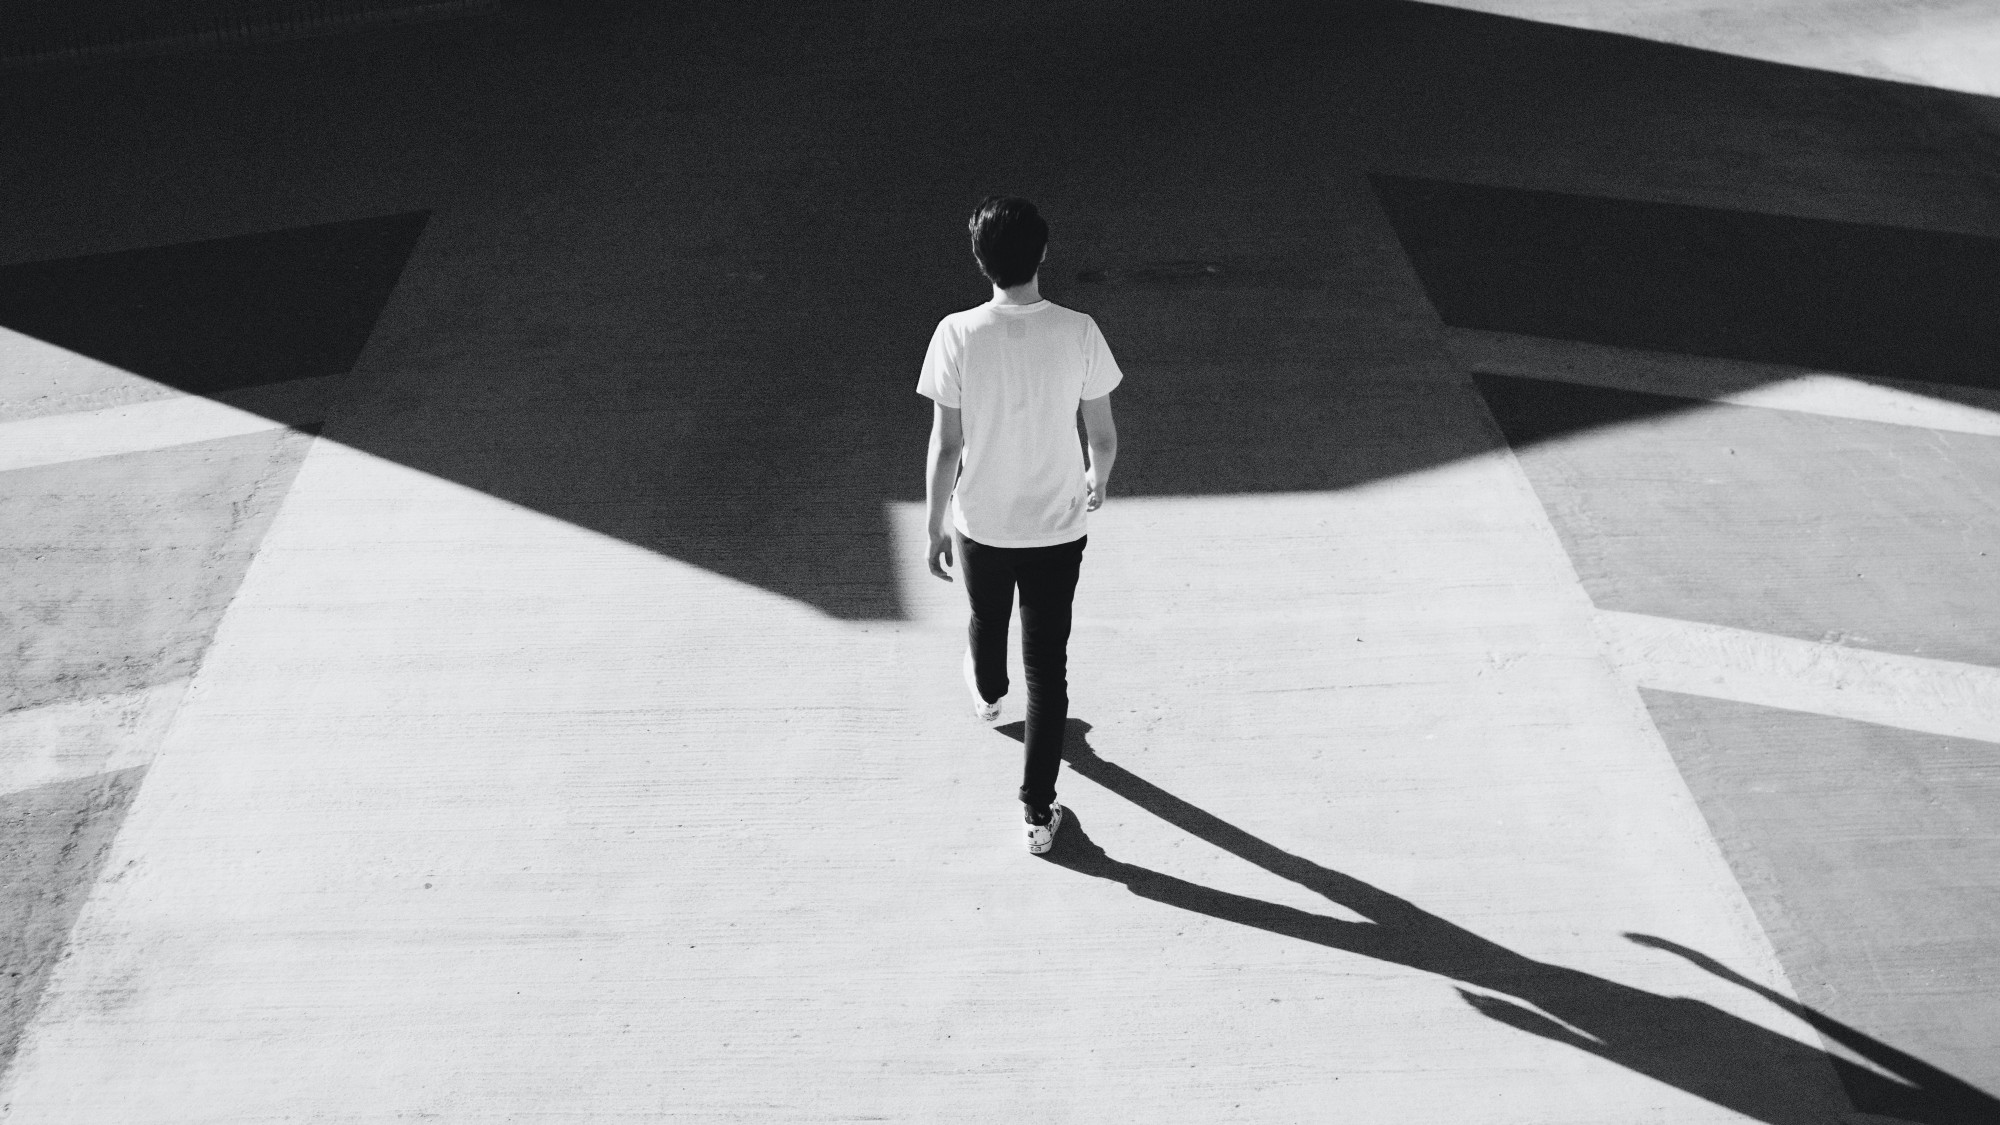 Person walking on concrete road, towards a shadow, image black and white